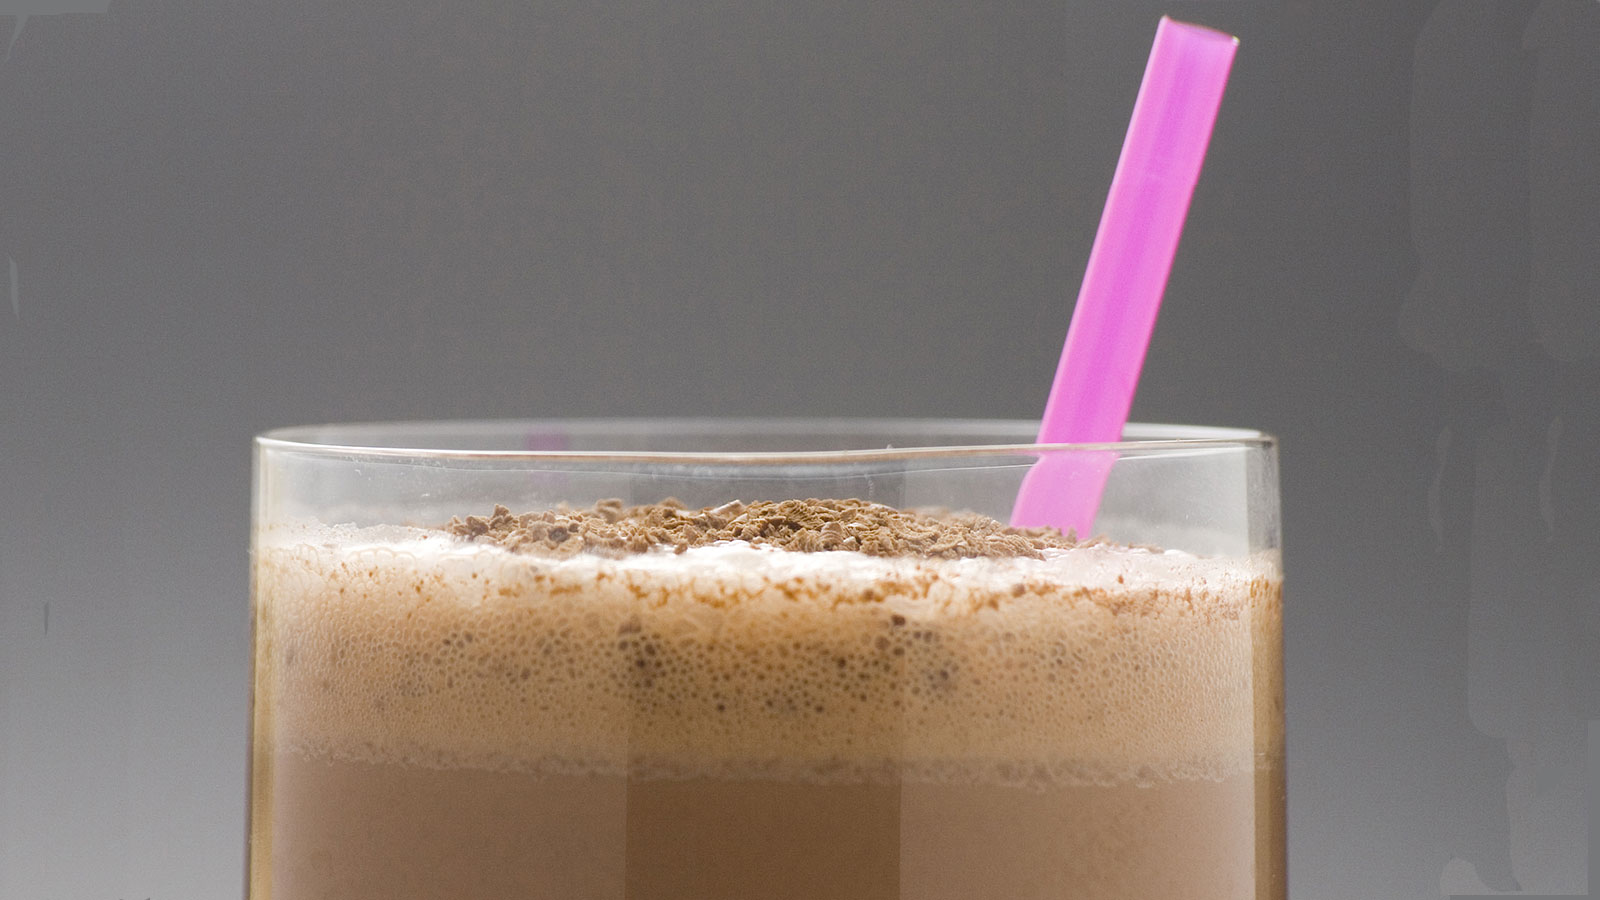 cinn choc protein shake featured